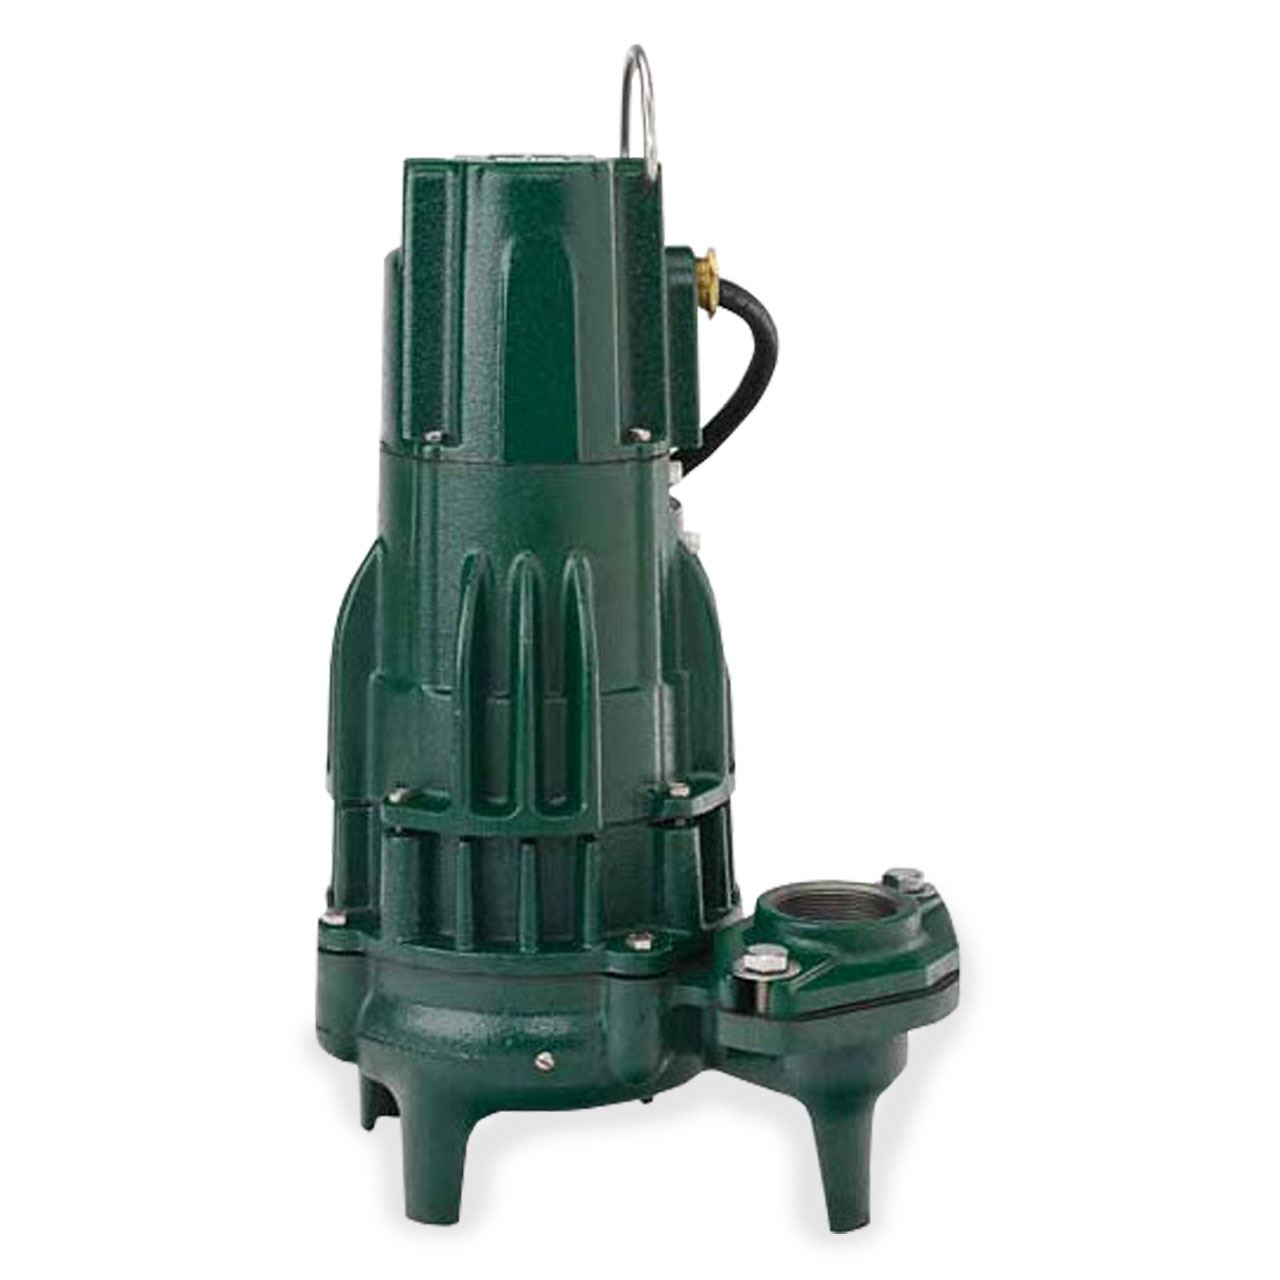 medium resolution of zoeller zoeller 295 0004 model e295 high head sewage dewatering sewer pump system zoeller submersible pump zoeller submersible pump wiring diagram